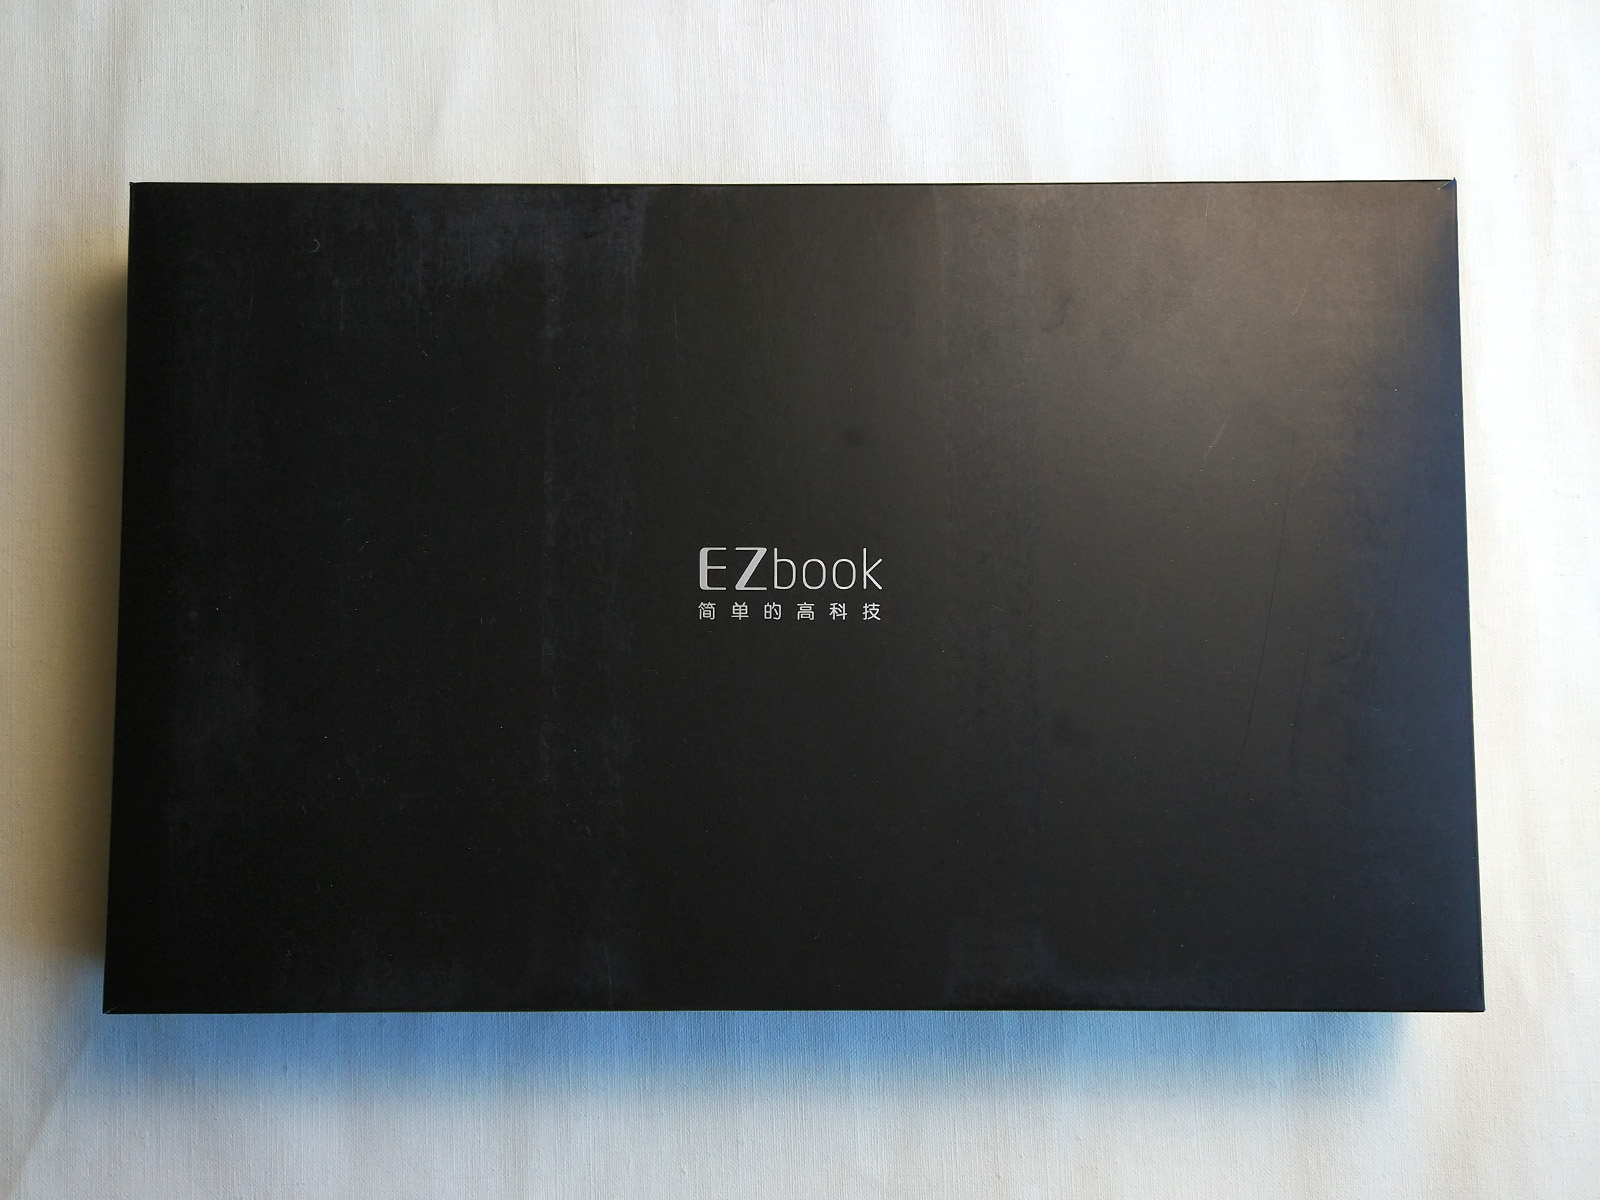 jumper-ezbook-air-first-look-unboxing-01